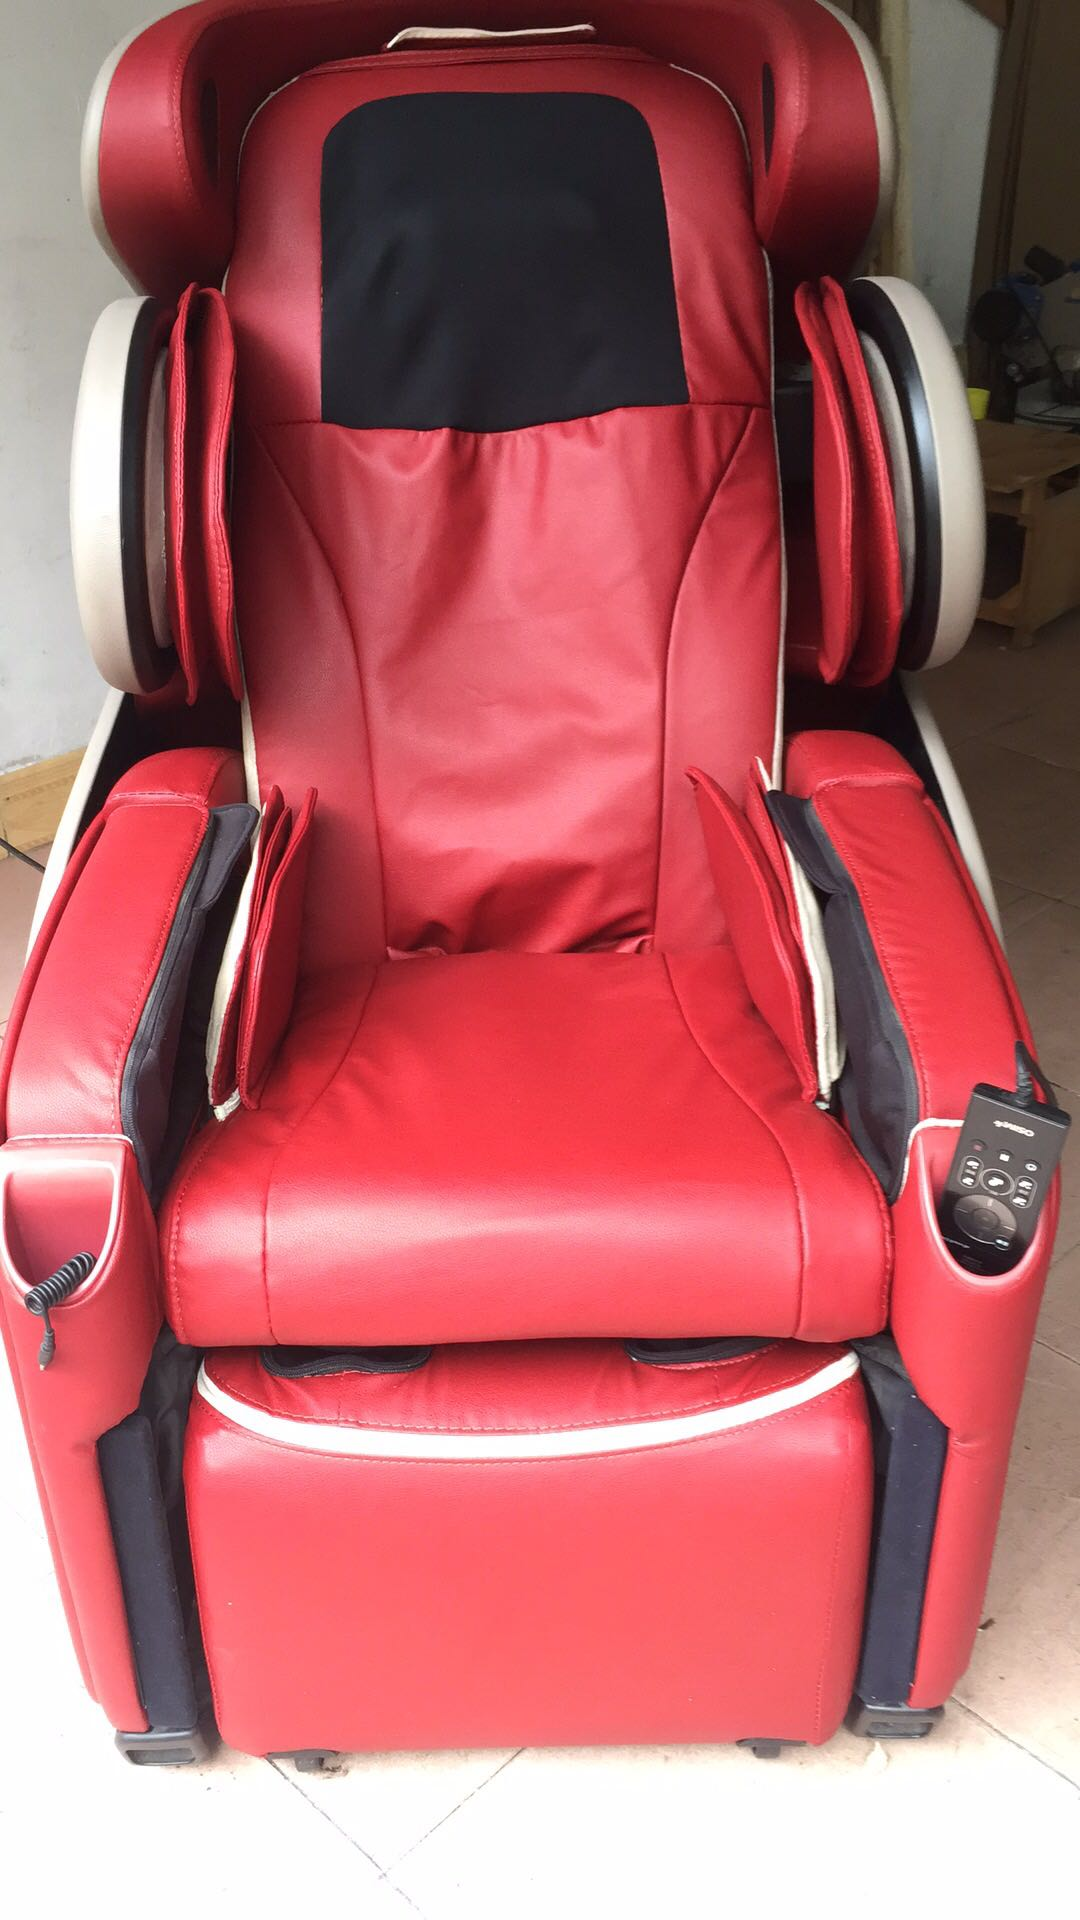 ... Lightbox Moreview · Lightbox Moreview. PrevNext. Guangzhou Massage  Chairs ...